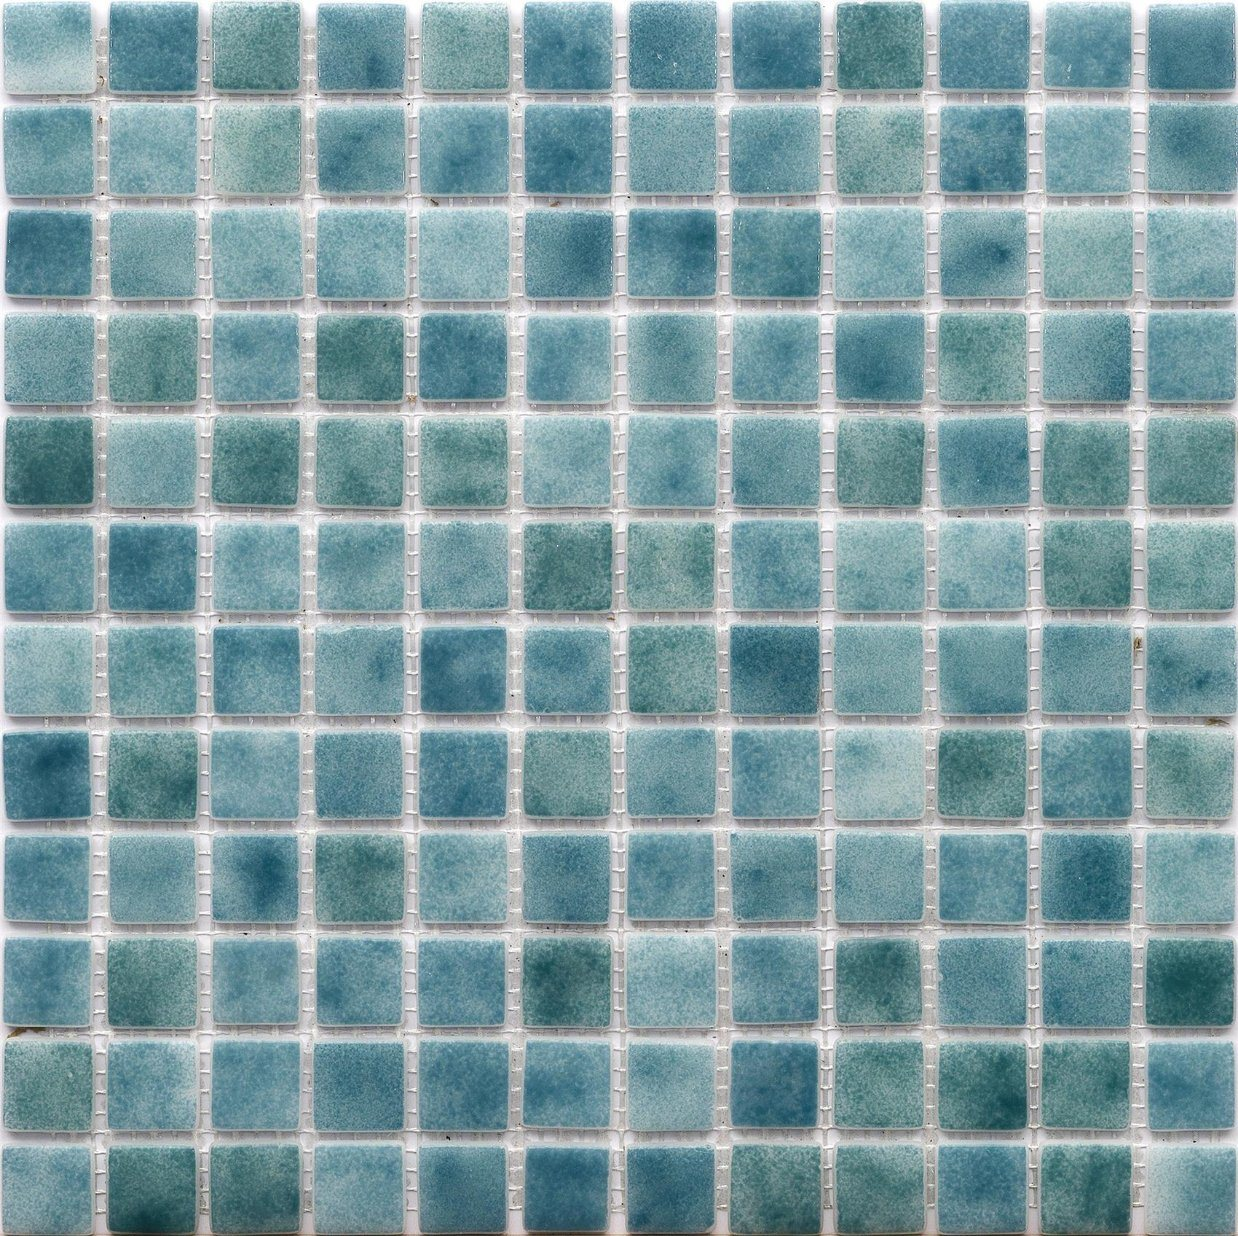 hot item gray blue glossy sea glass recycle glass 14 color for choose swimming pool mosaic tiles v425012 b